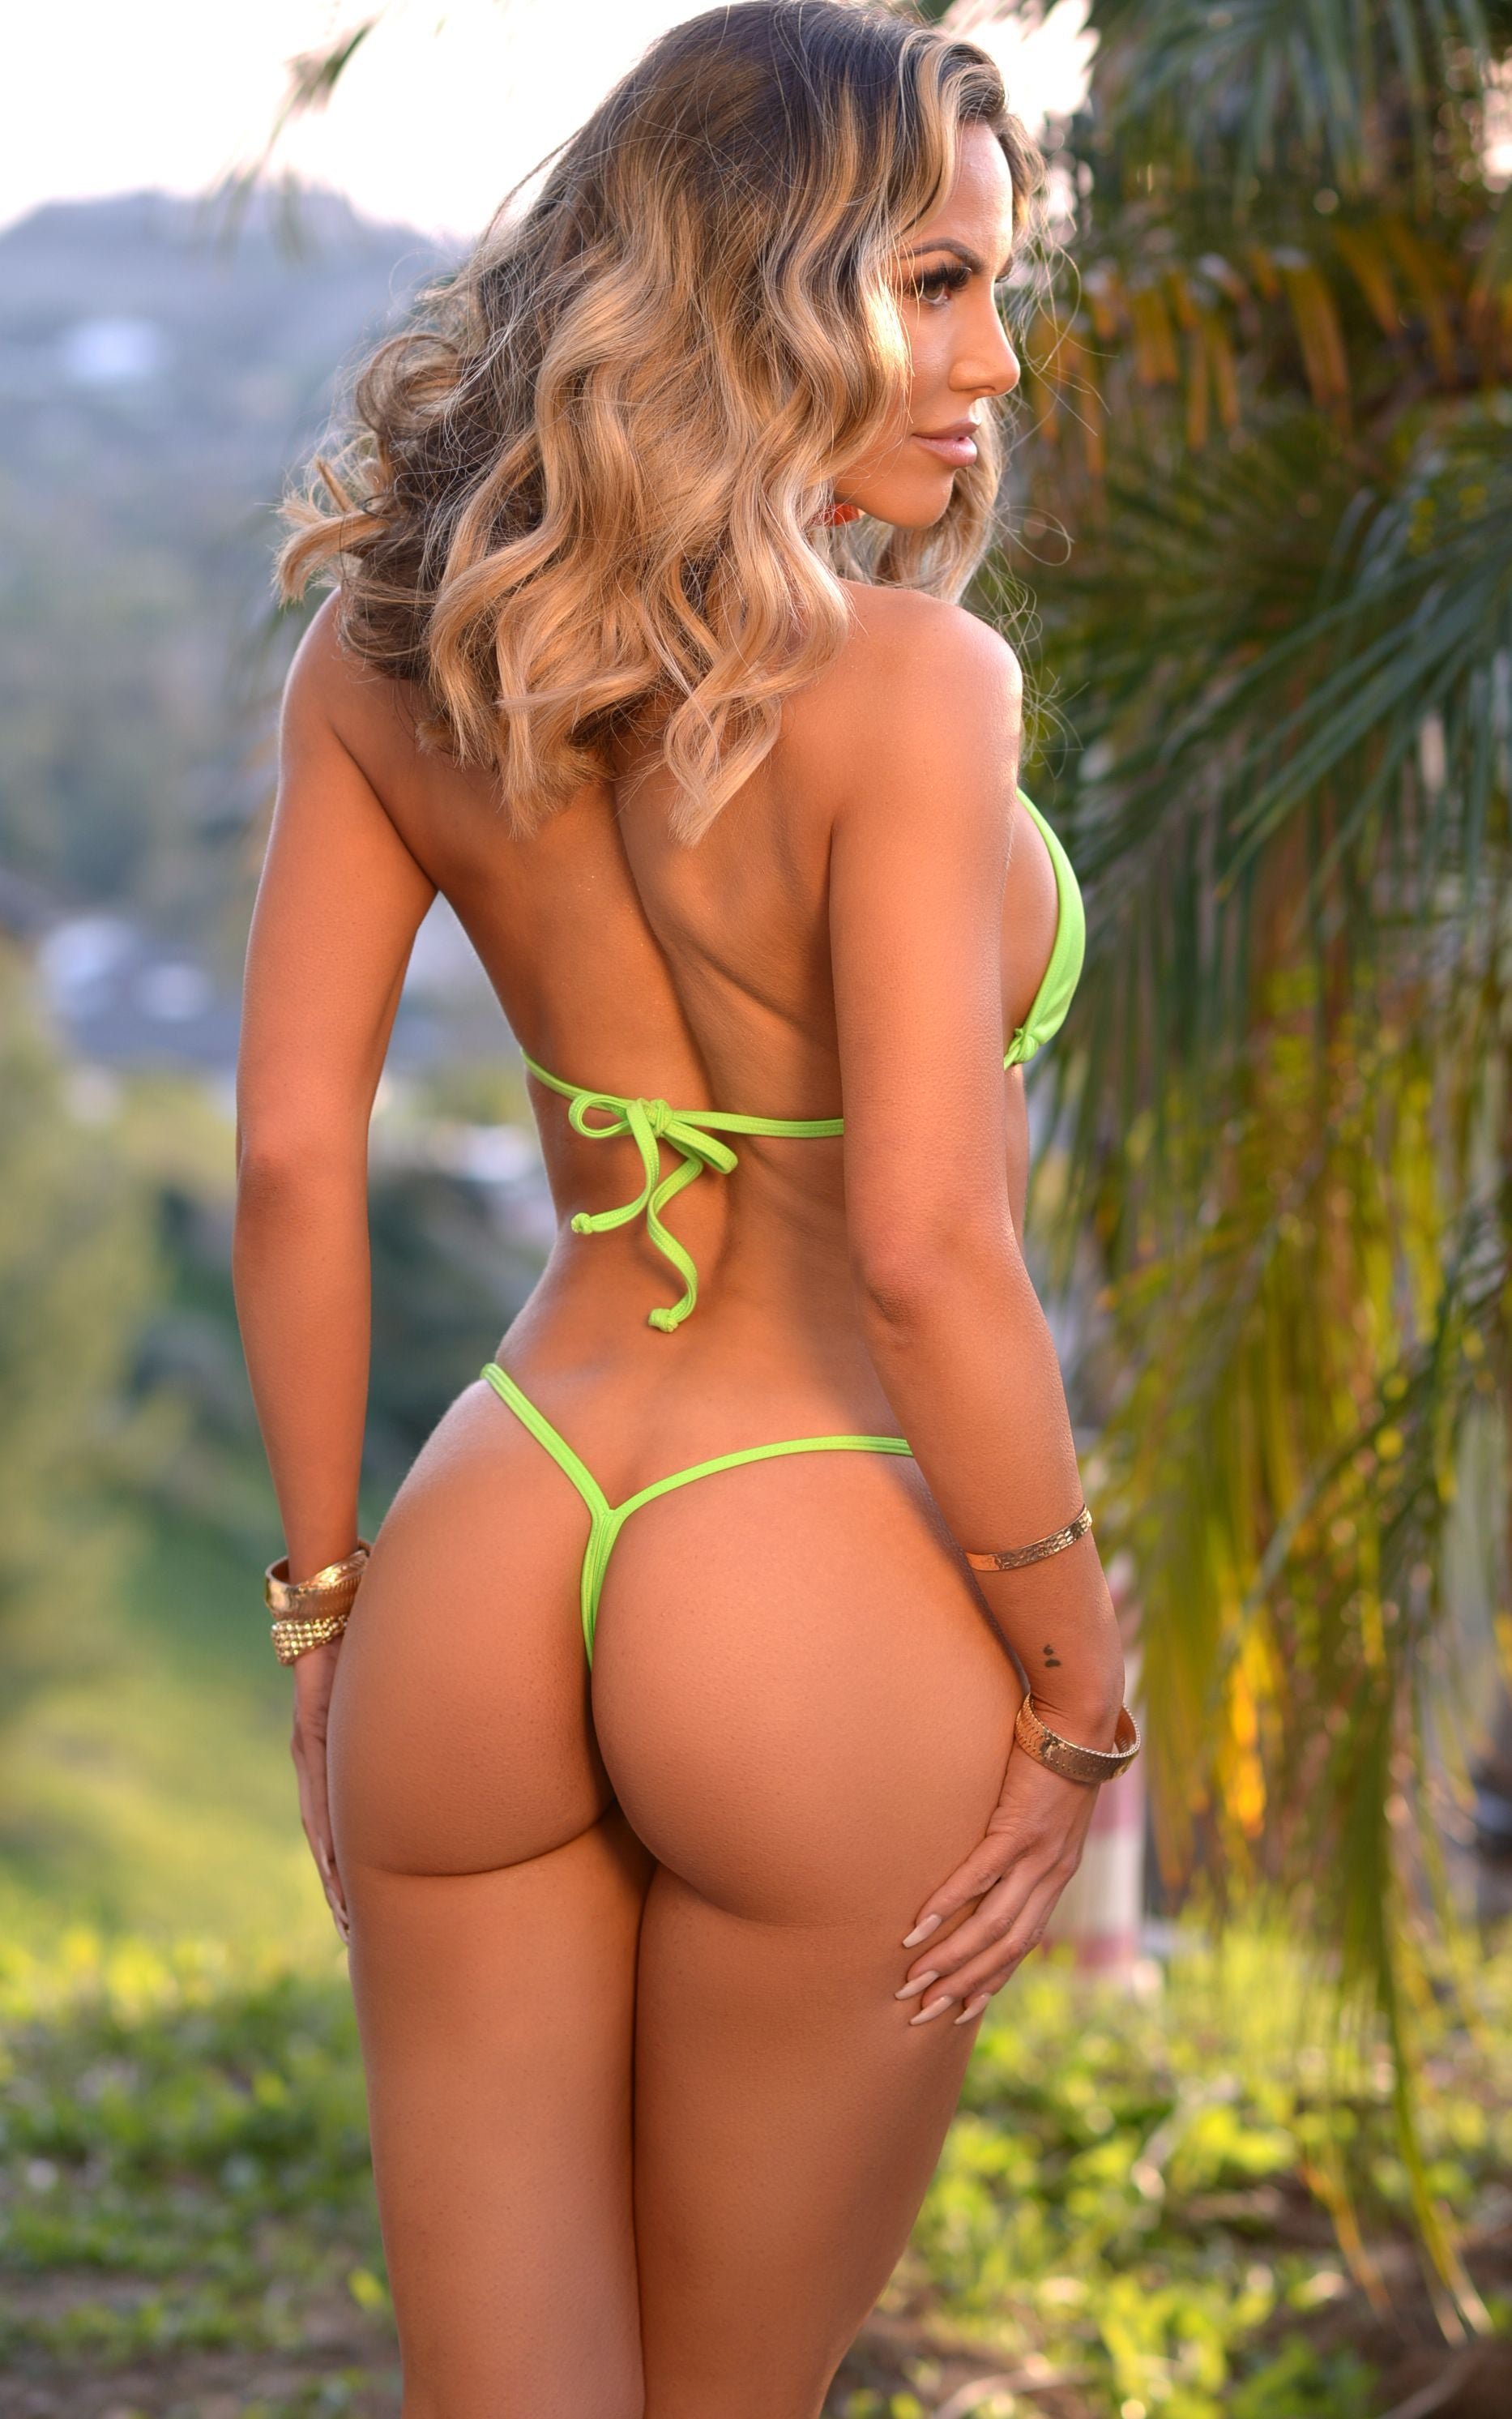 Coco: Y-Back G-String Thong Bikini in Solid Neon Green - Chynna Dolls Swimwear